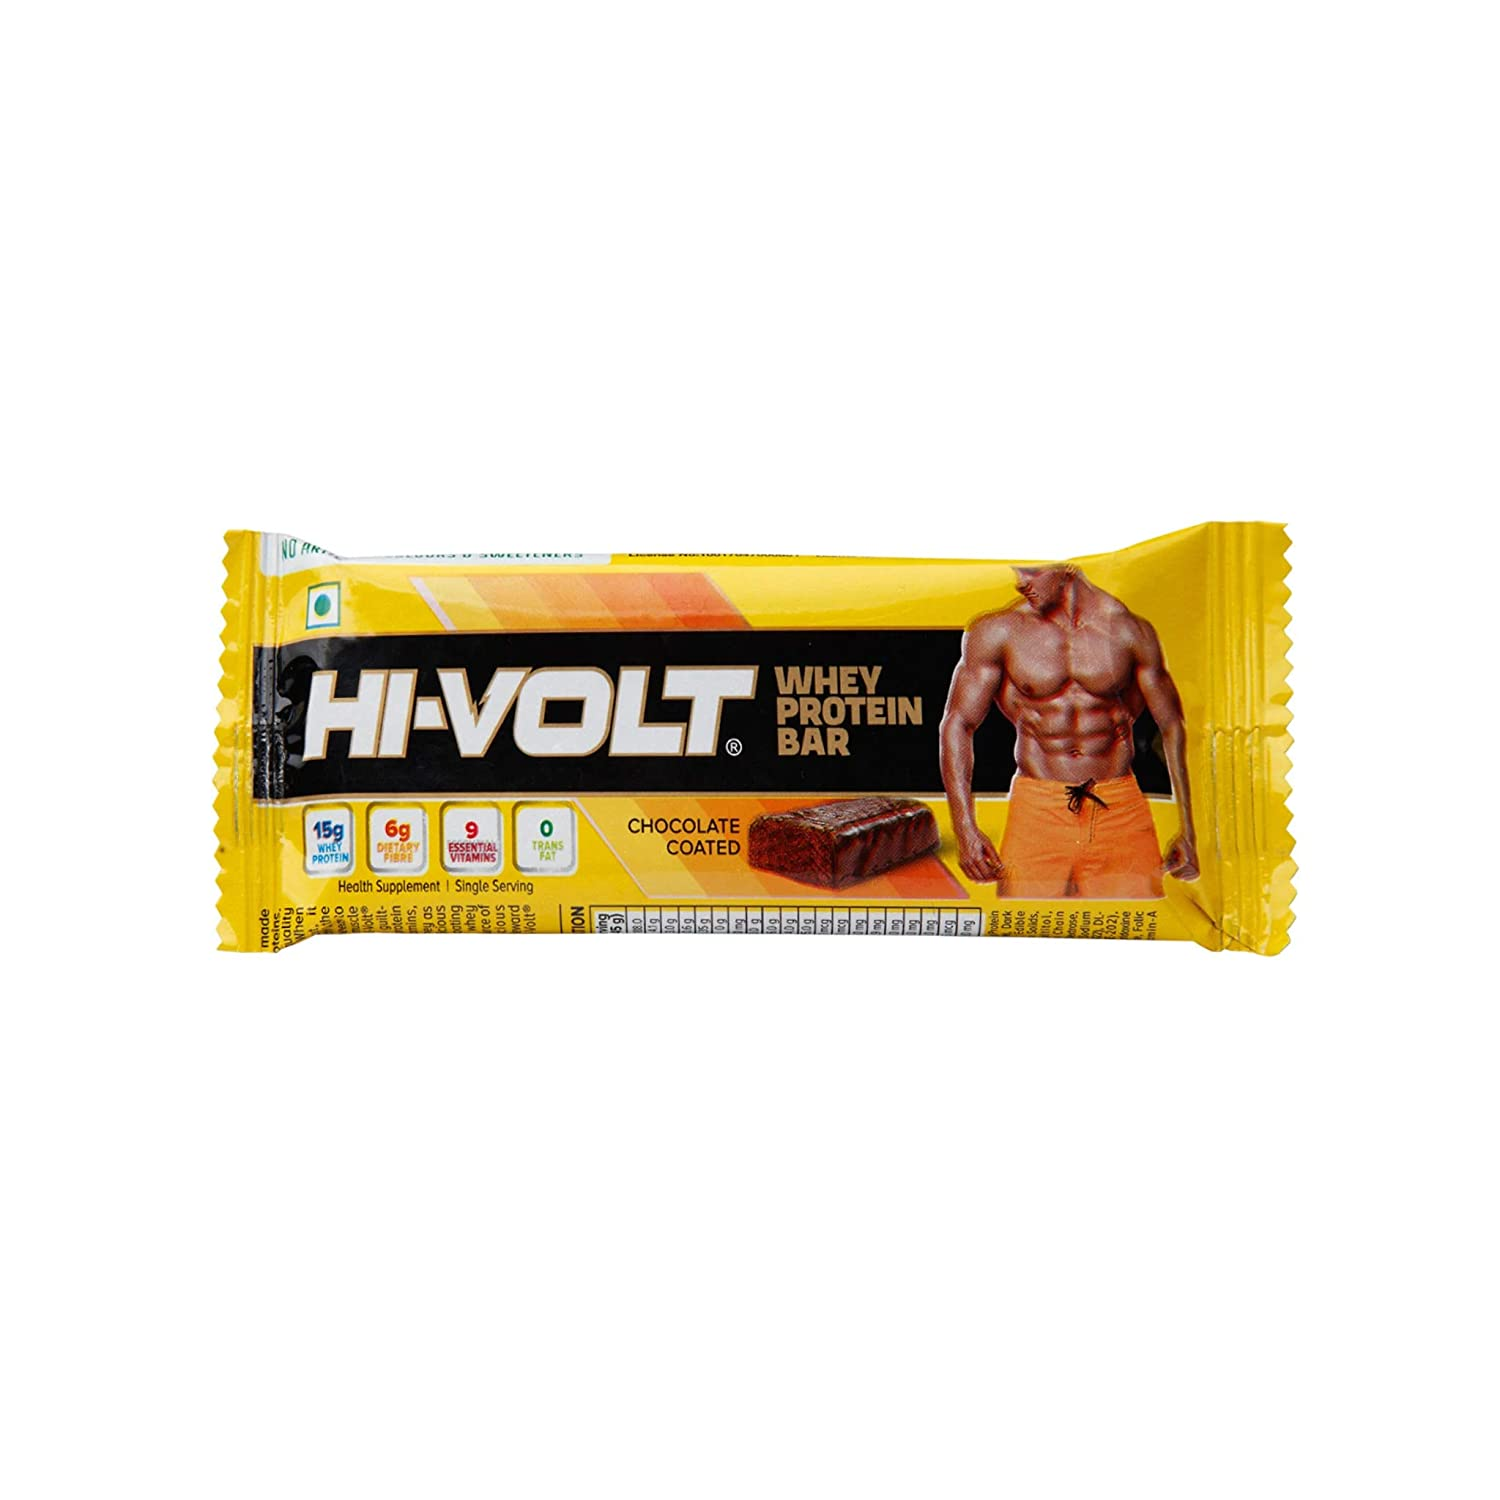 HI VOLT Whey Protein Bar Chocolate Coated  45 gm Buy 4 Get 4 Free